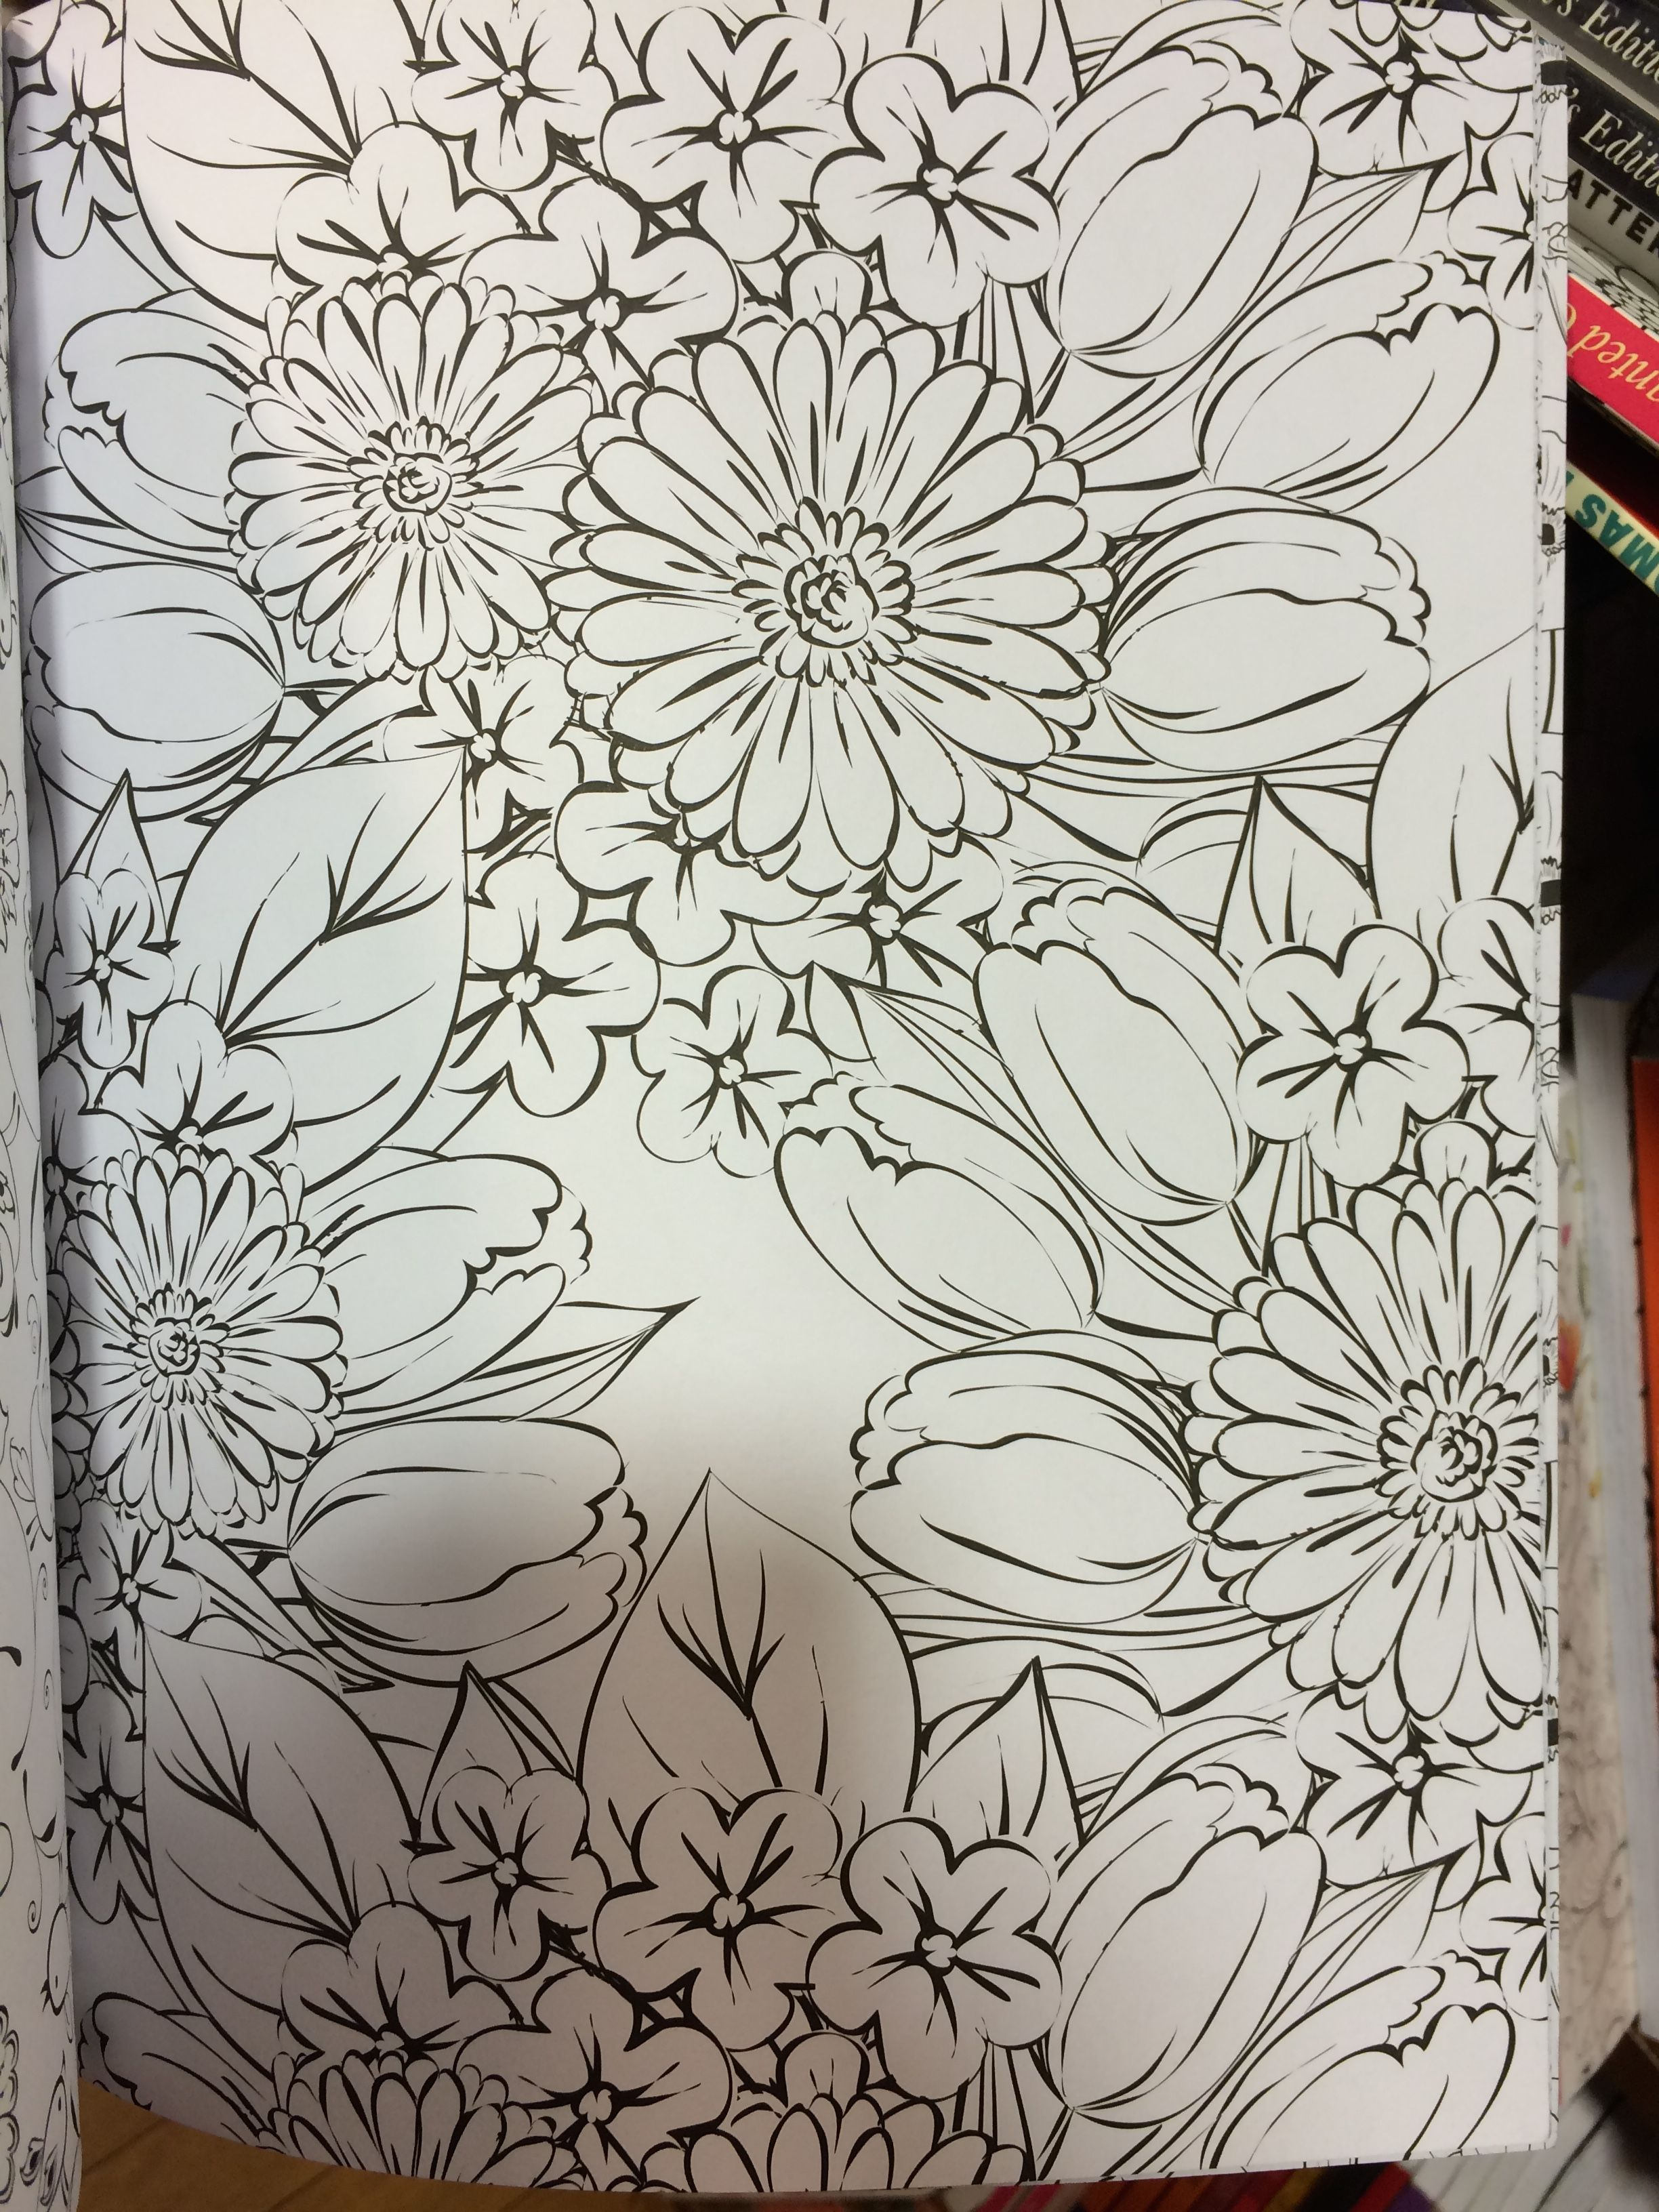 Another type of tulip pattern (outline) in a coloring book ...